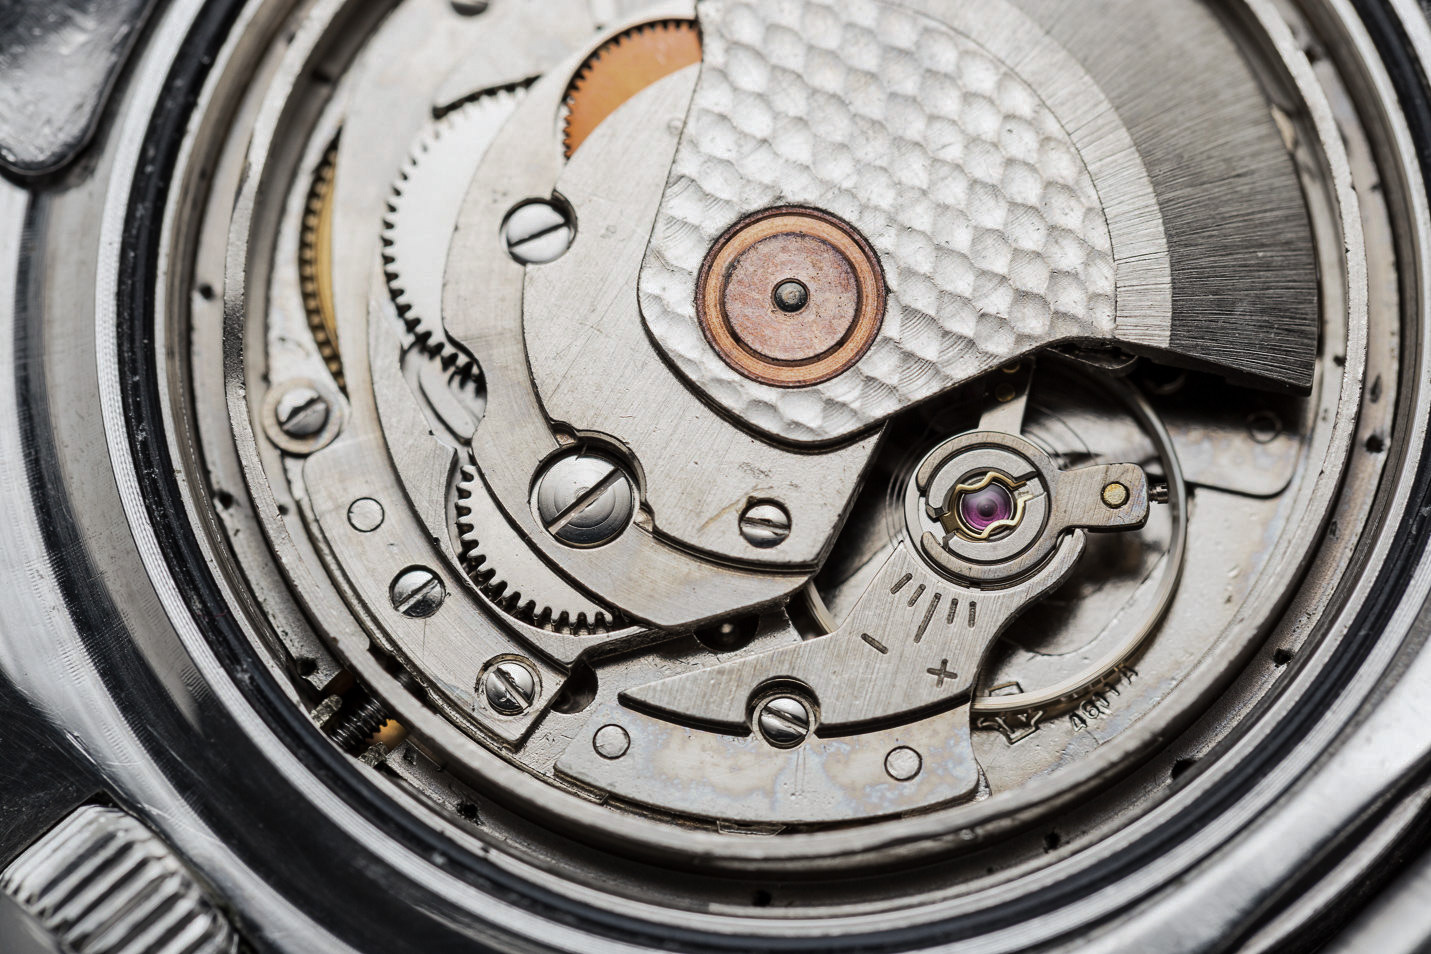 French-made automatic movement FE4611A Image source:  shucktheoyster.com